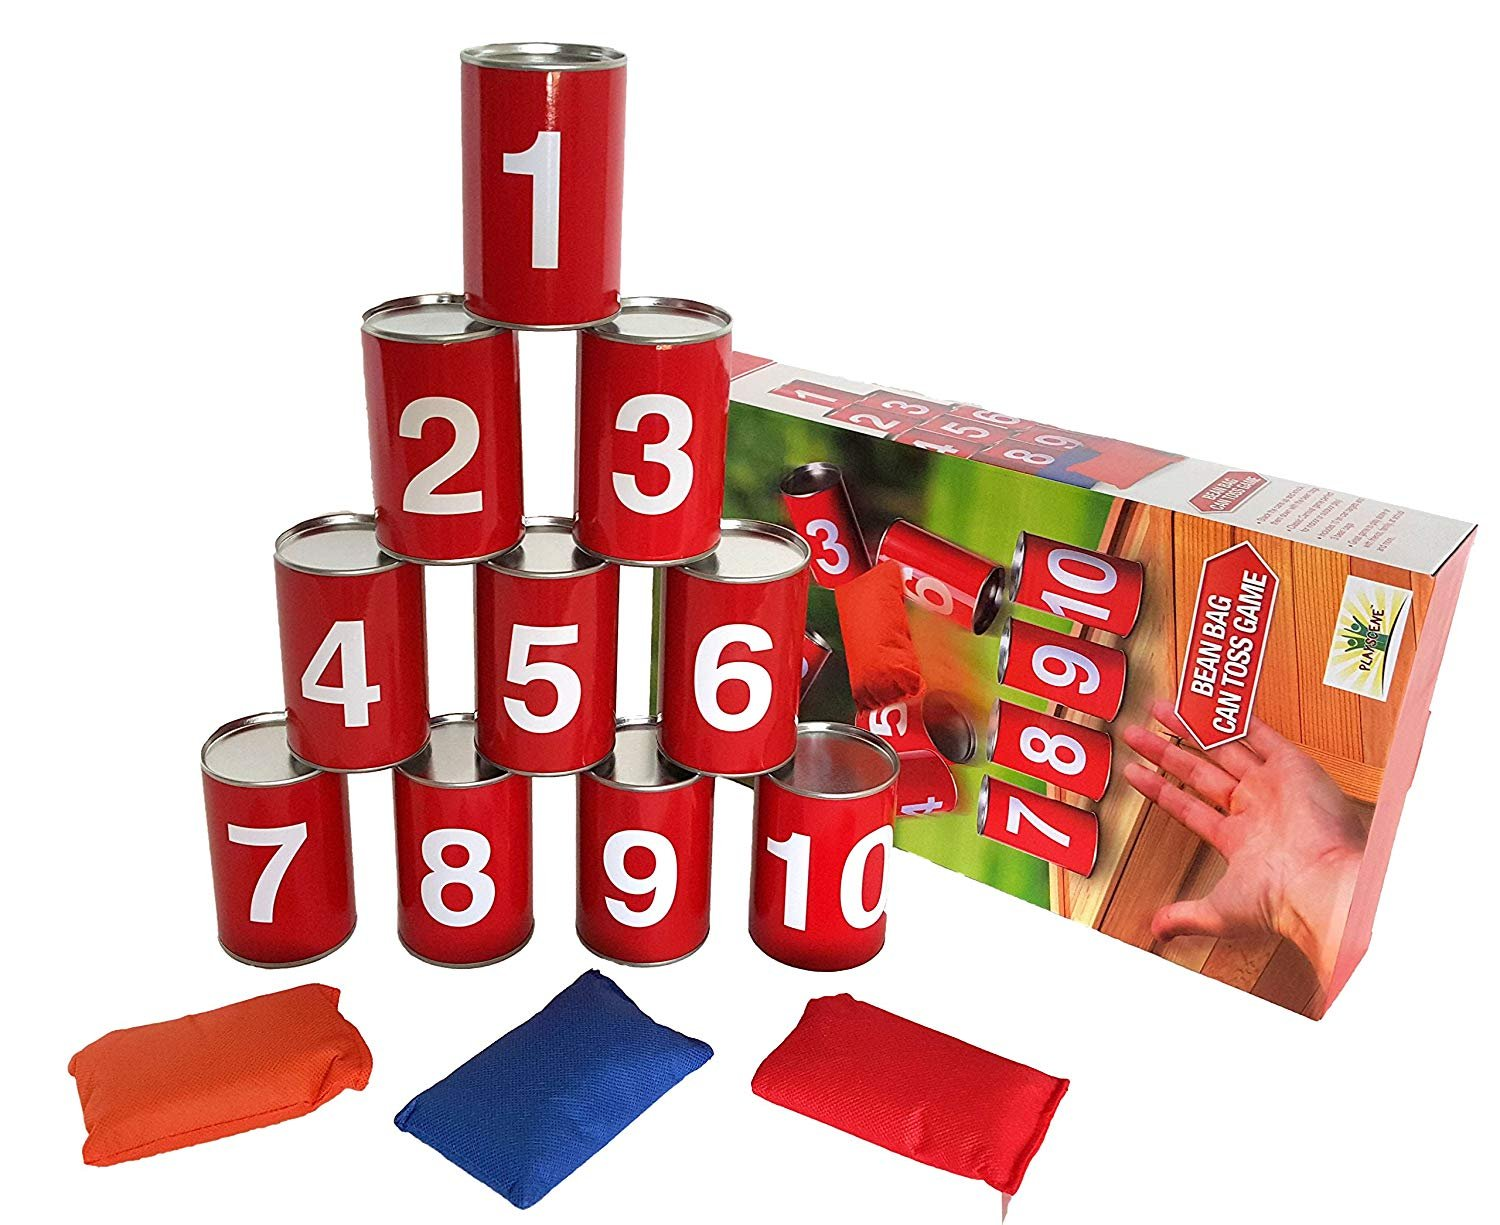 'Playscene' Carnival Bean Bag Toss Game